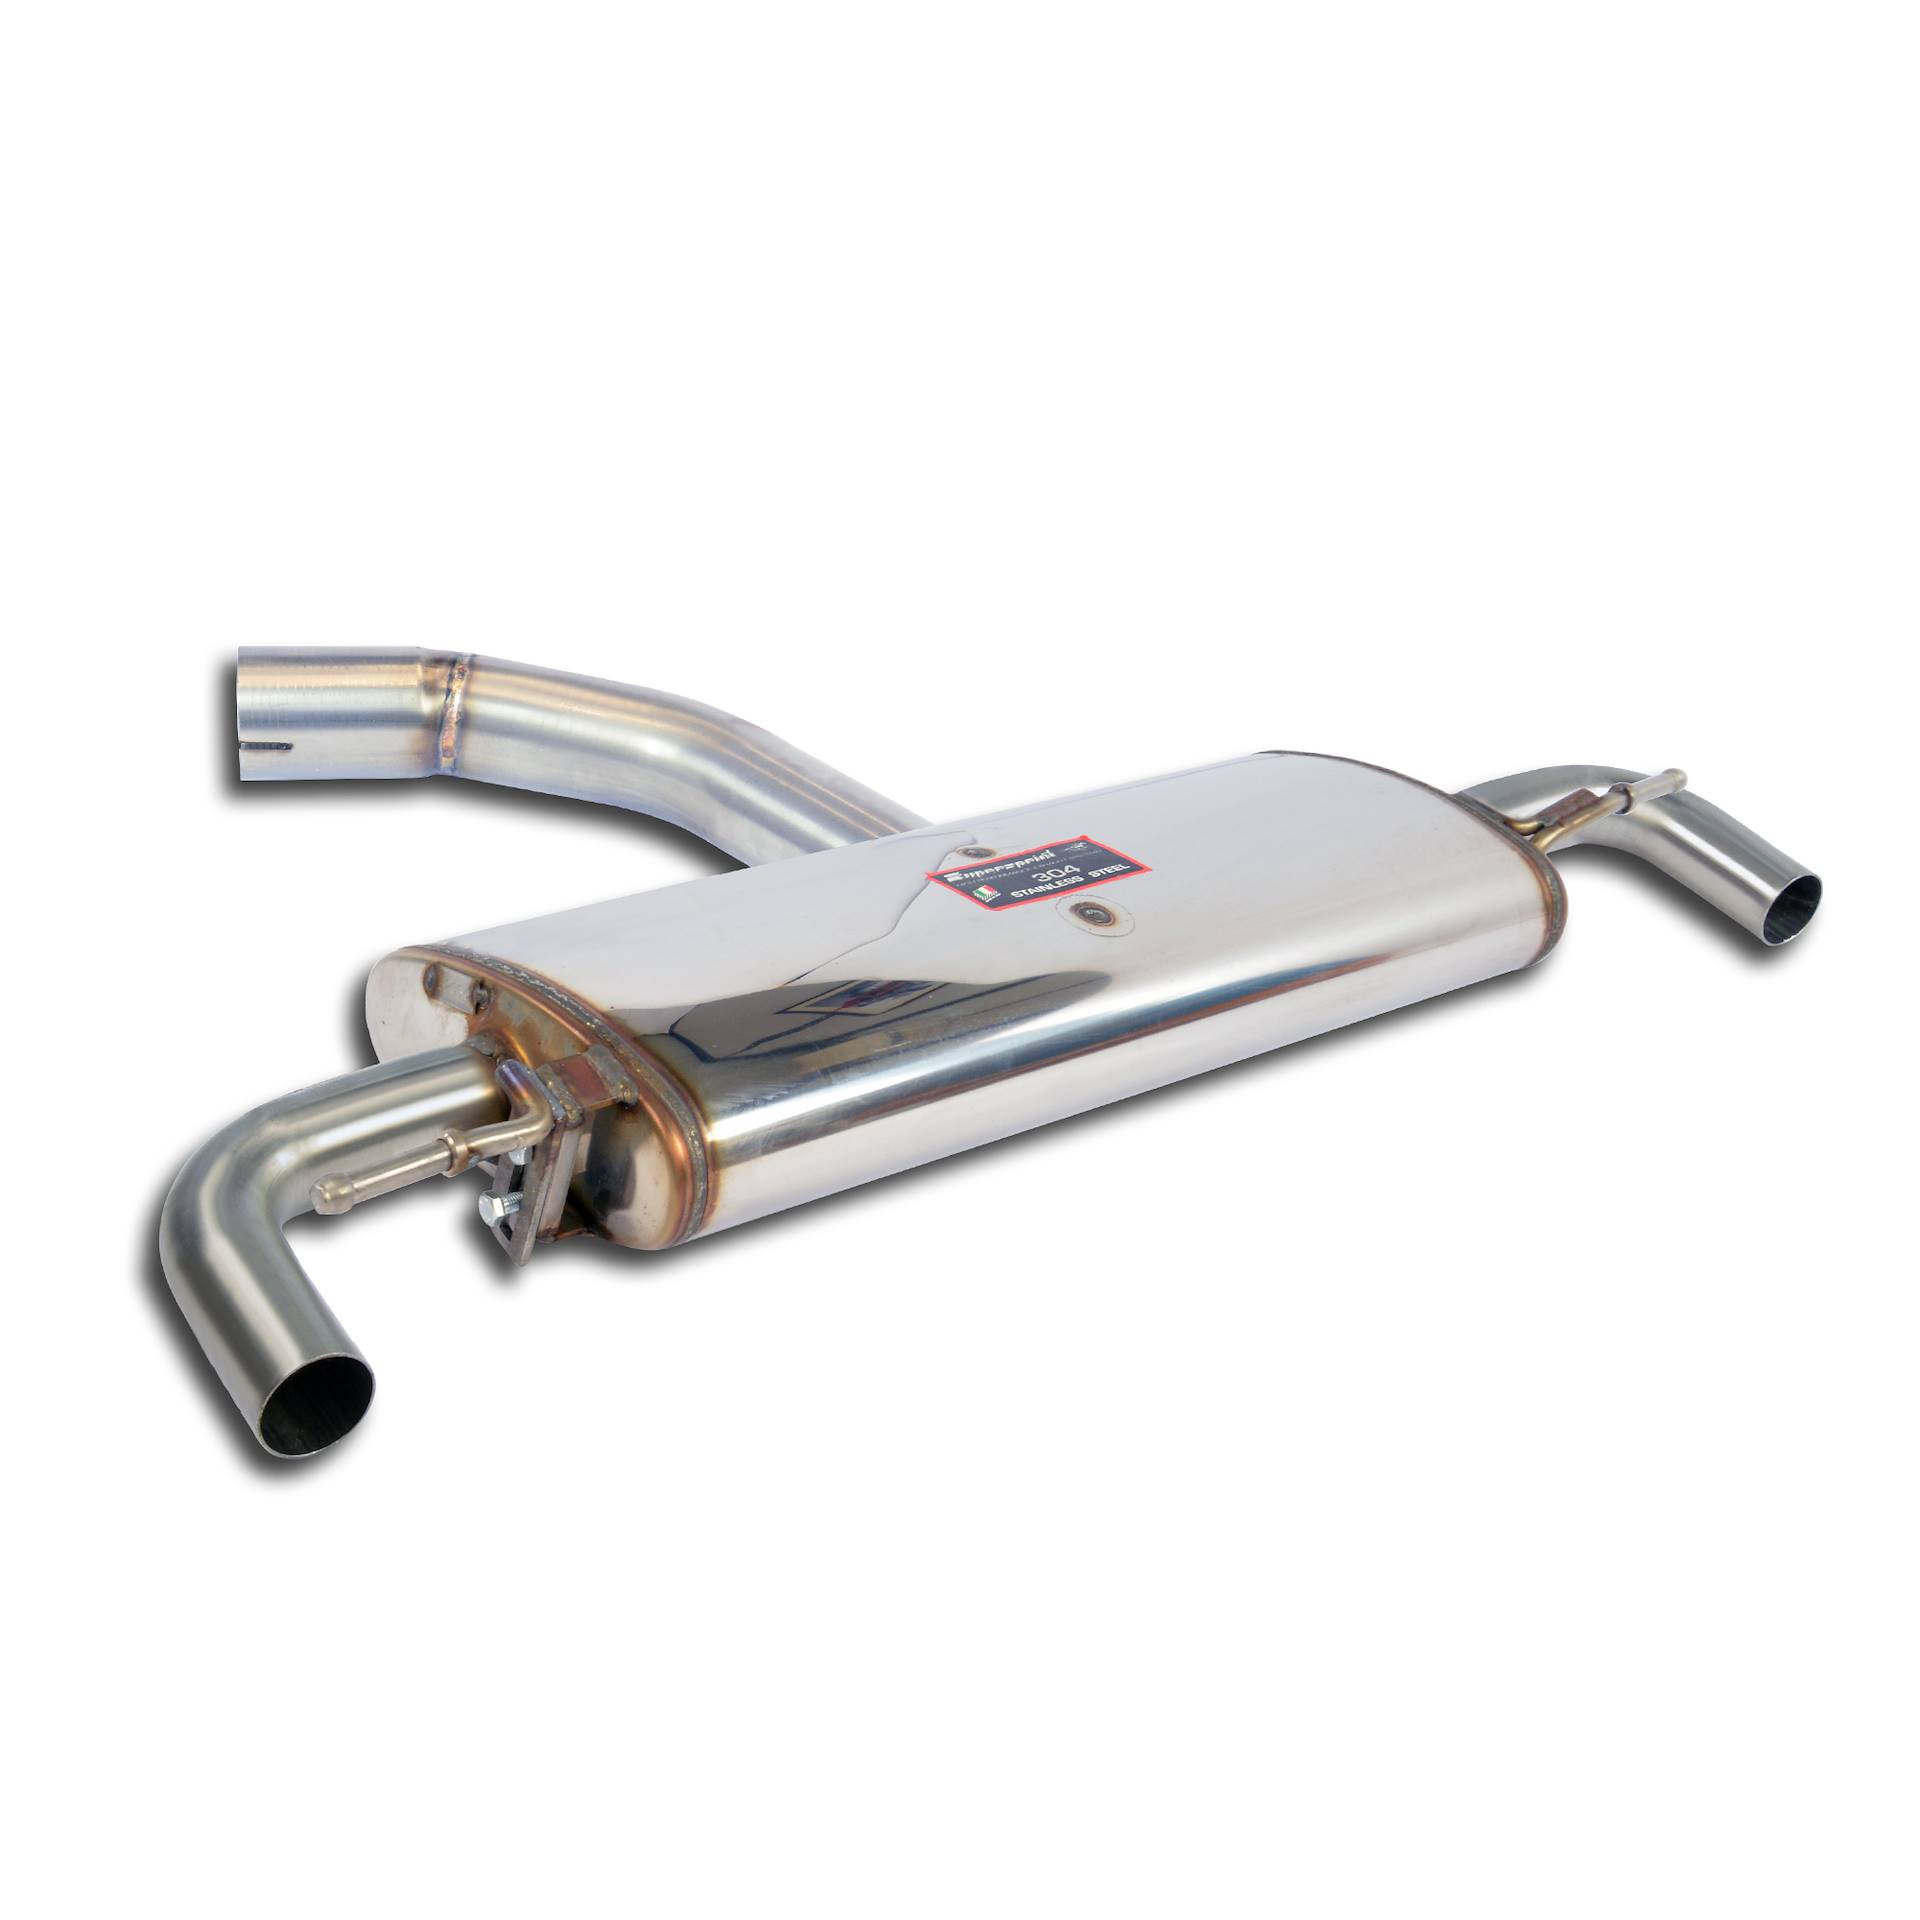 Audi - AUDI A3 8P 2.0 TDi (140 Hp) ' 03 ->'13 Rear exhaust , performance exhaust systems